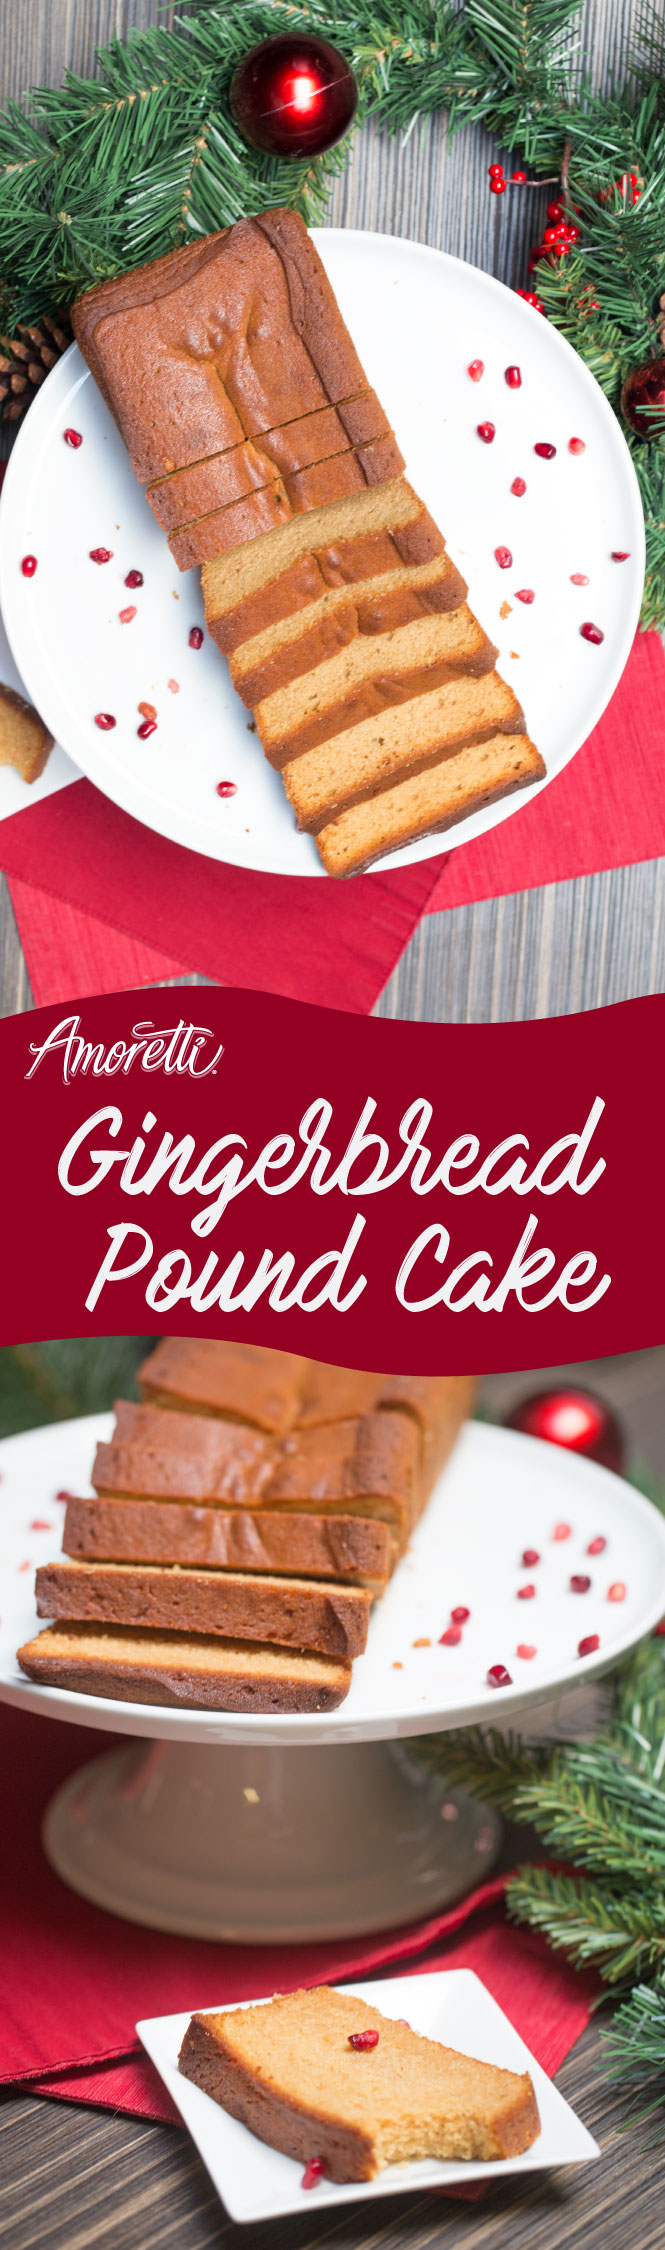 A great recipe for the holidays our gingerbread pound cake its pack with flavor!